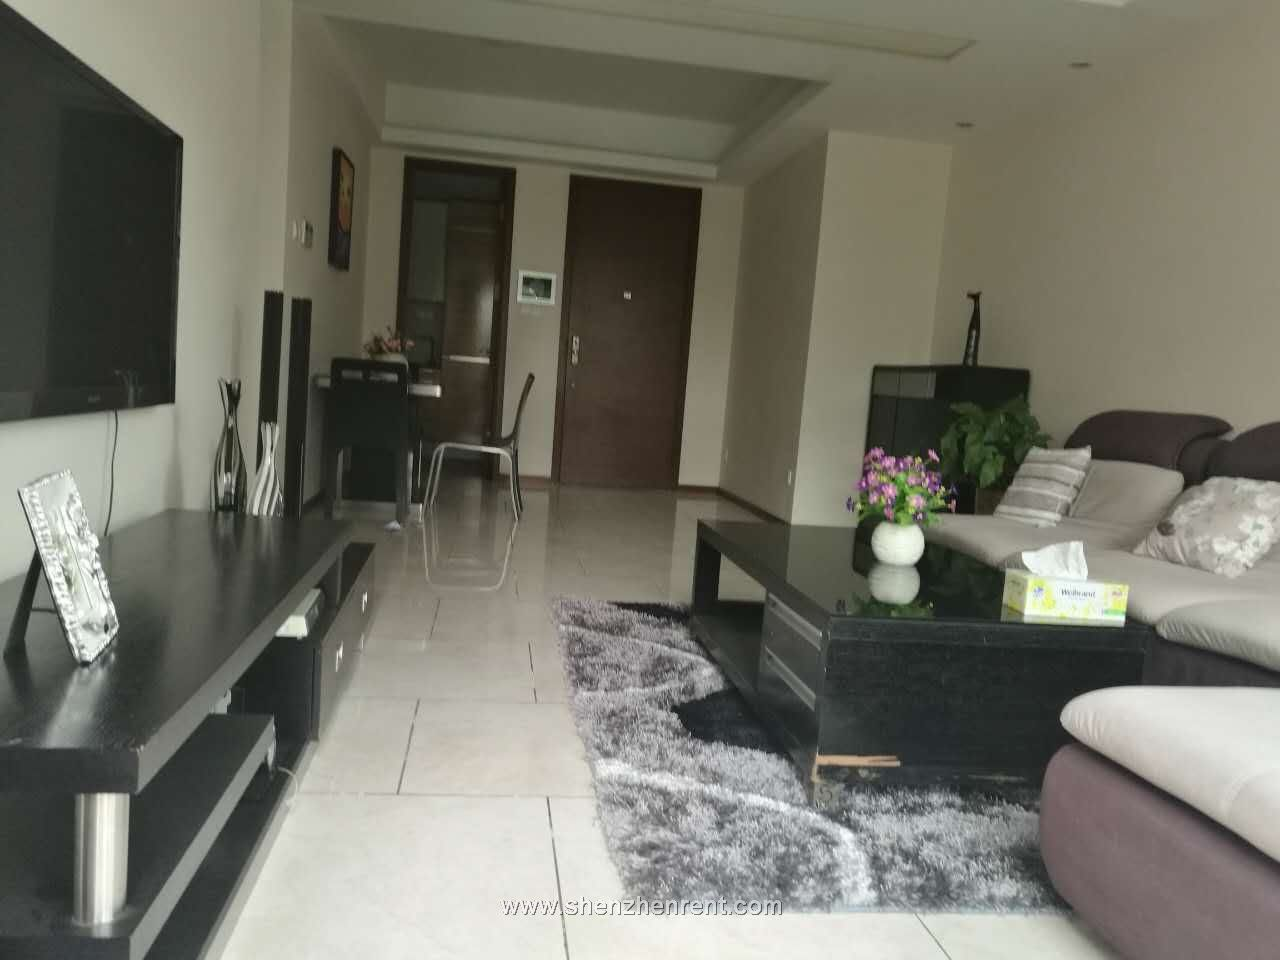 Modern 2 bedrooms apartment in shekou mont orchid for rent